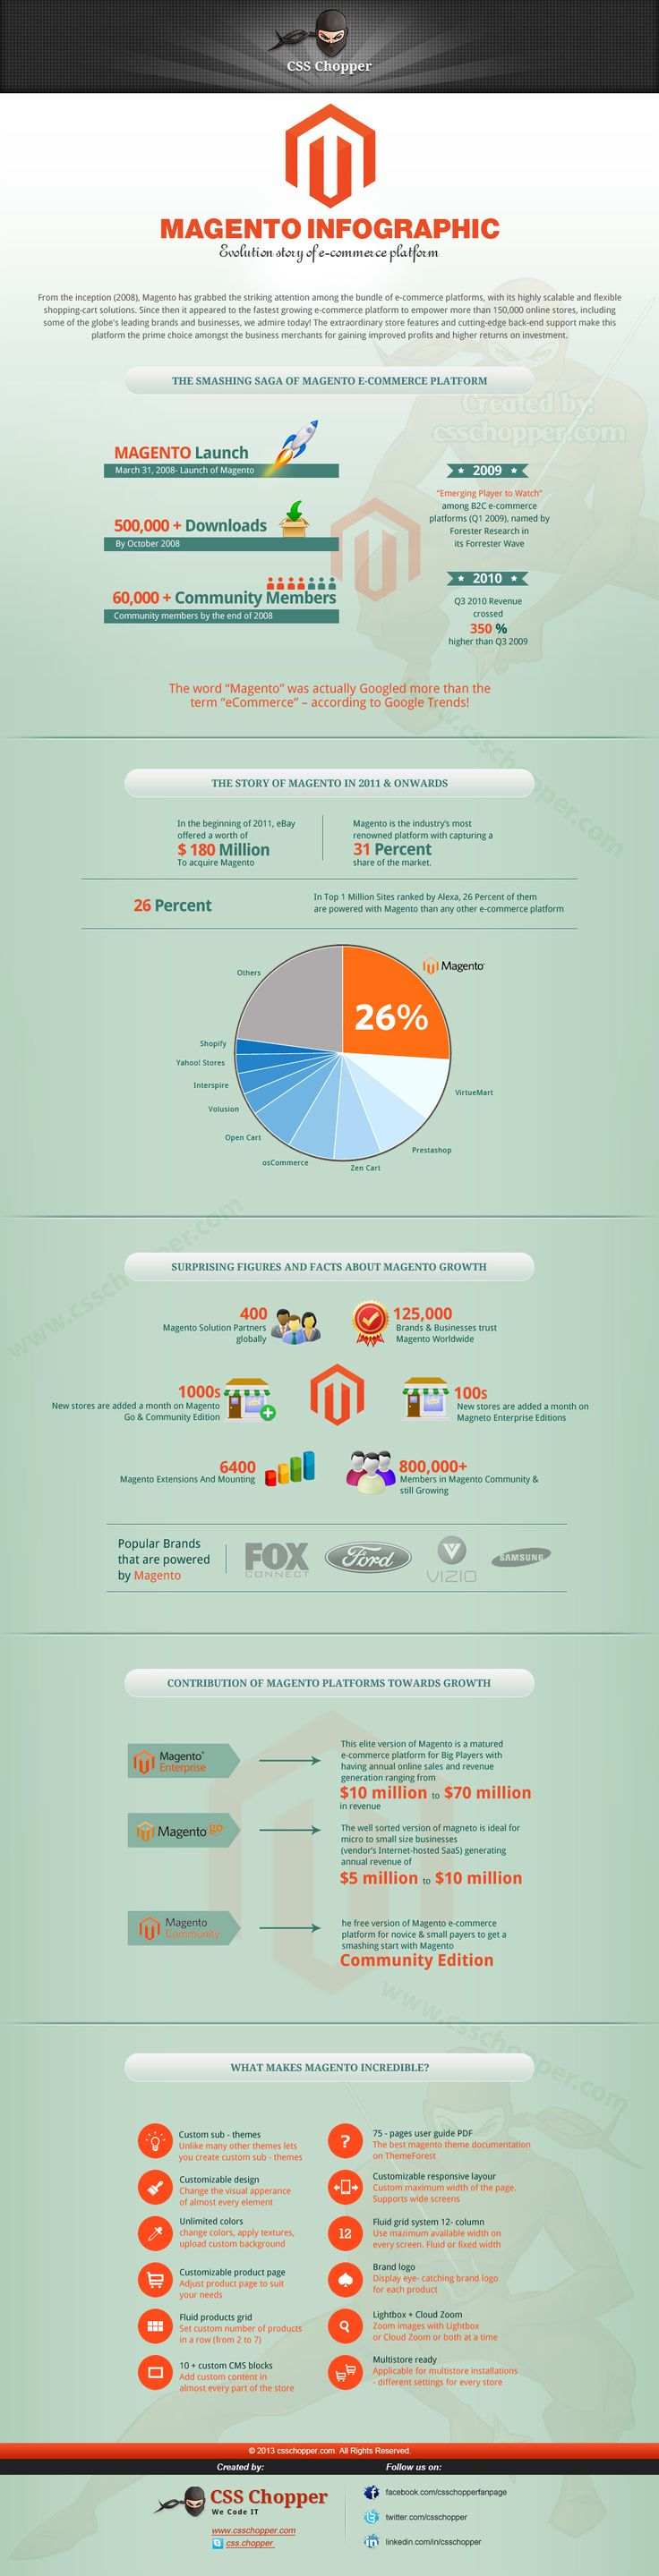 #Magento evolution infographics. Full version: http://www.csschopper.com/blog/magento-infographics-unique-evolution-story-of-ecommerce-platform